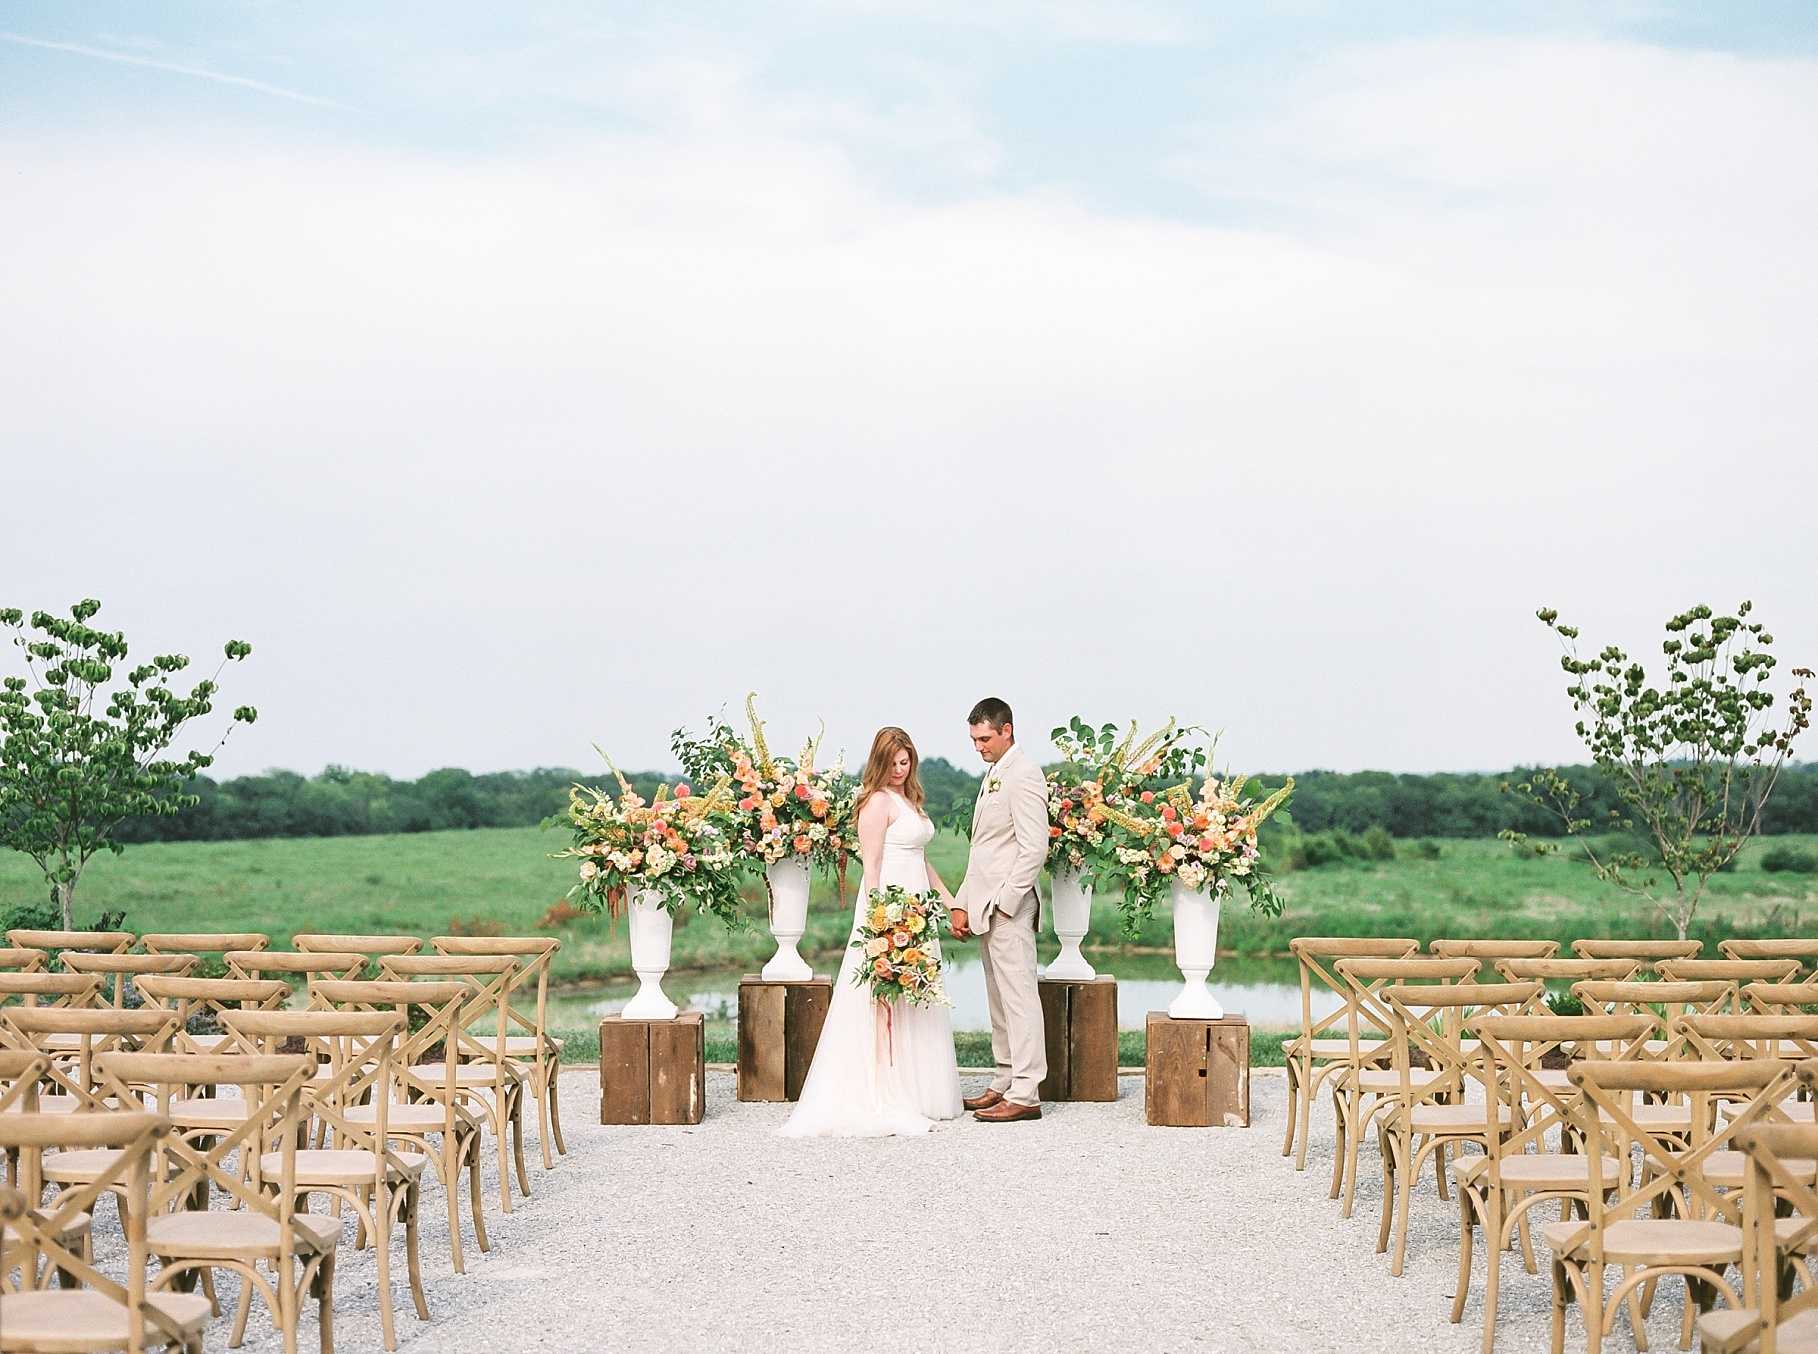 Late Summer Wedding With Pastel Toned Soiree at Blue Bell Farm by Kelsi Kliethermes Photography Best Columbia Missouri Wedding Photographer_0019.jpg